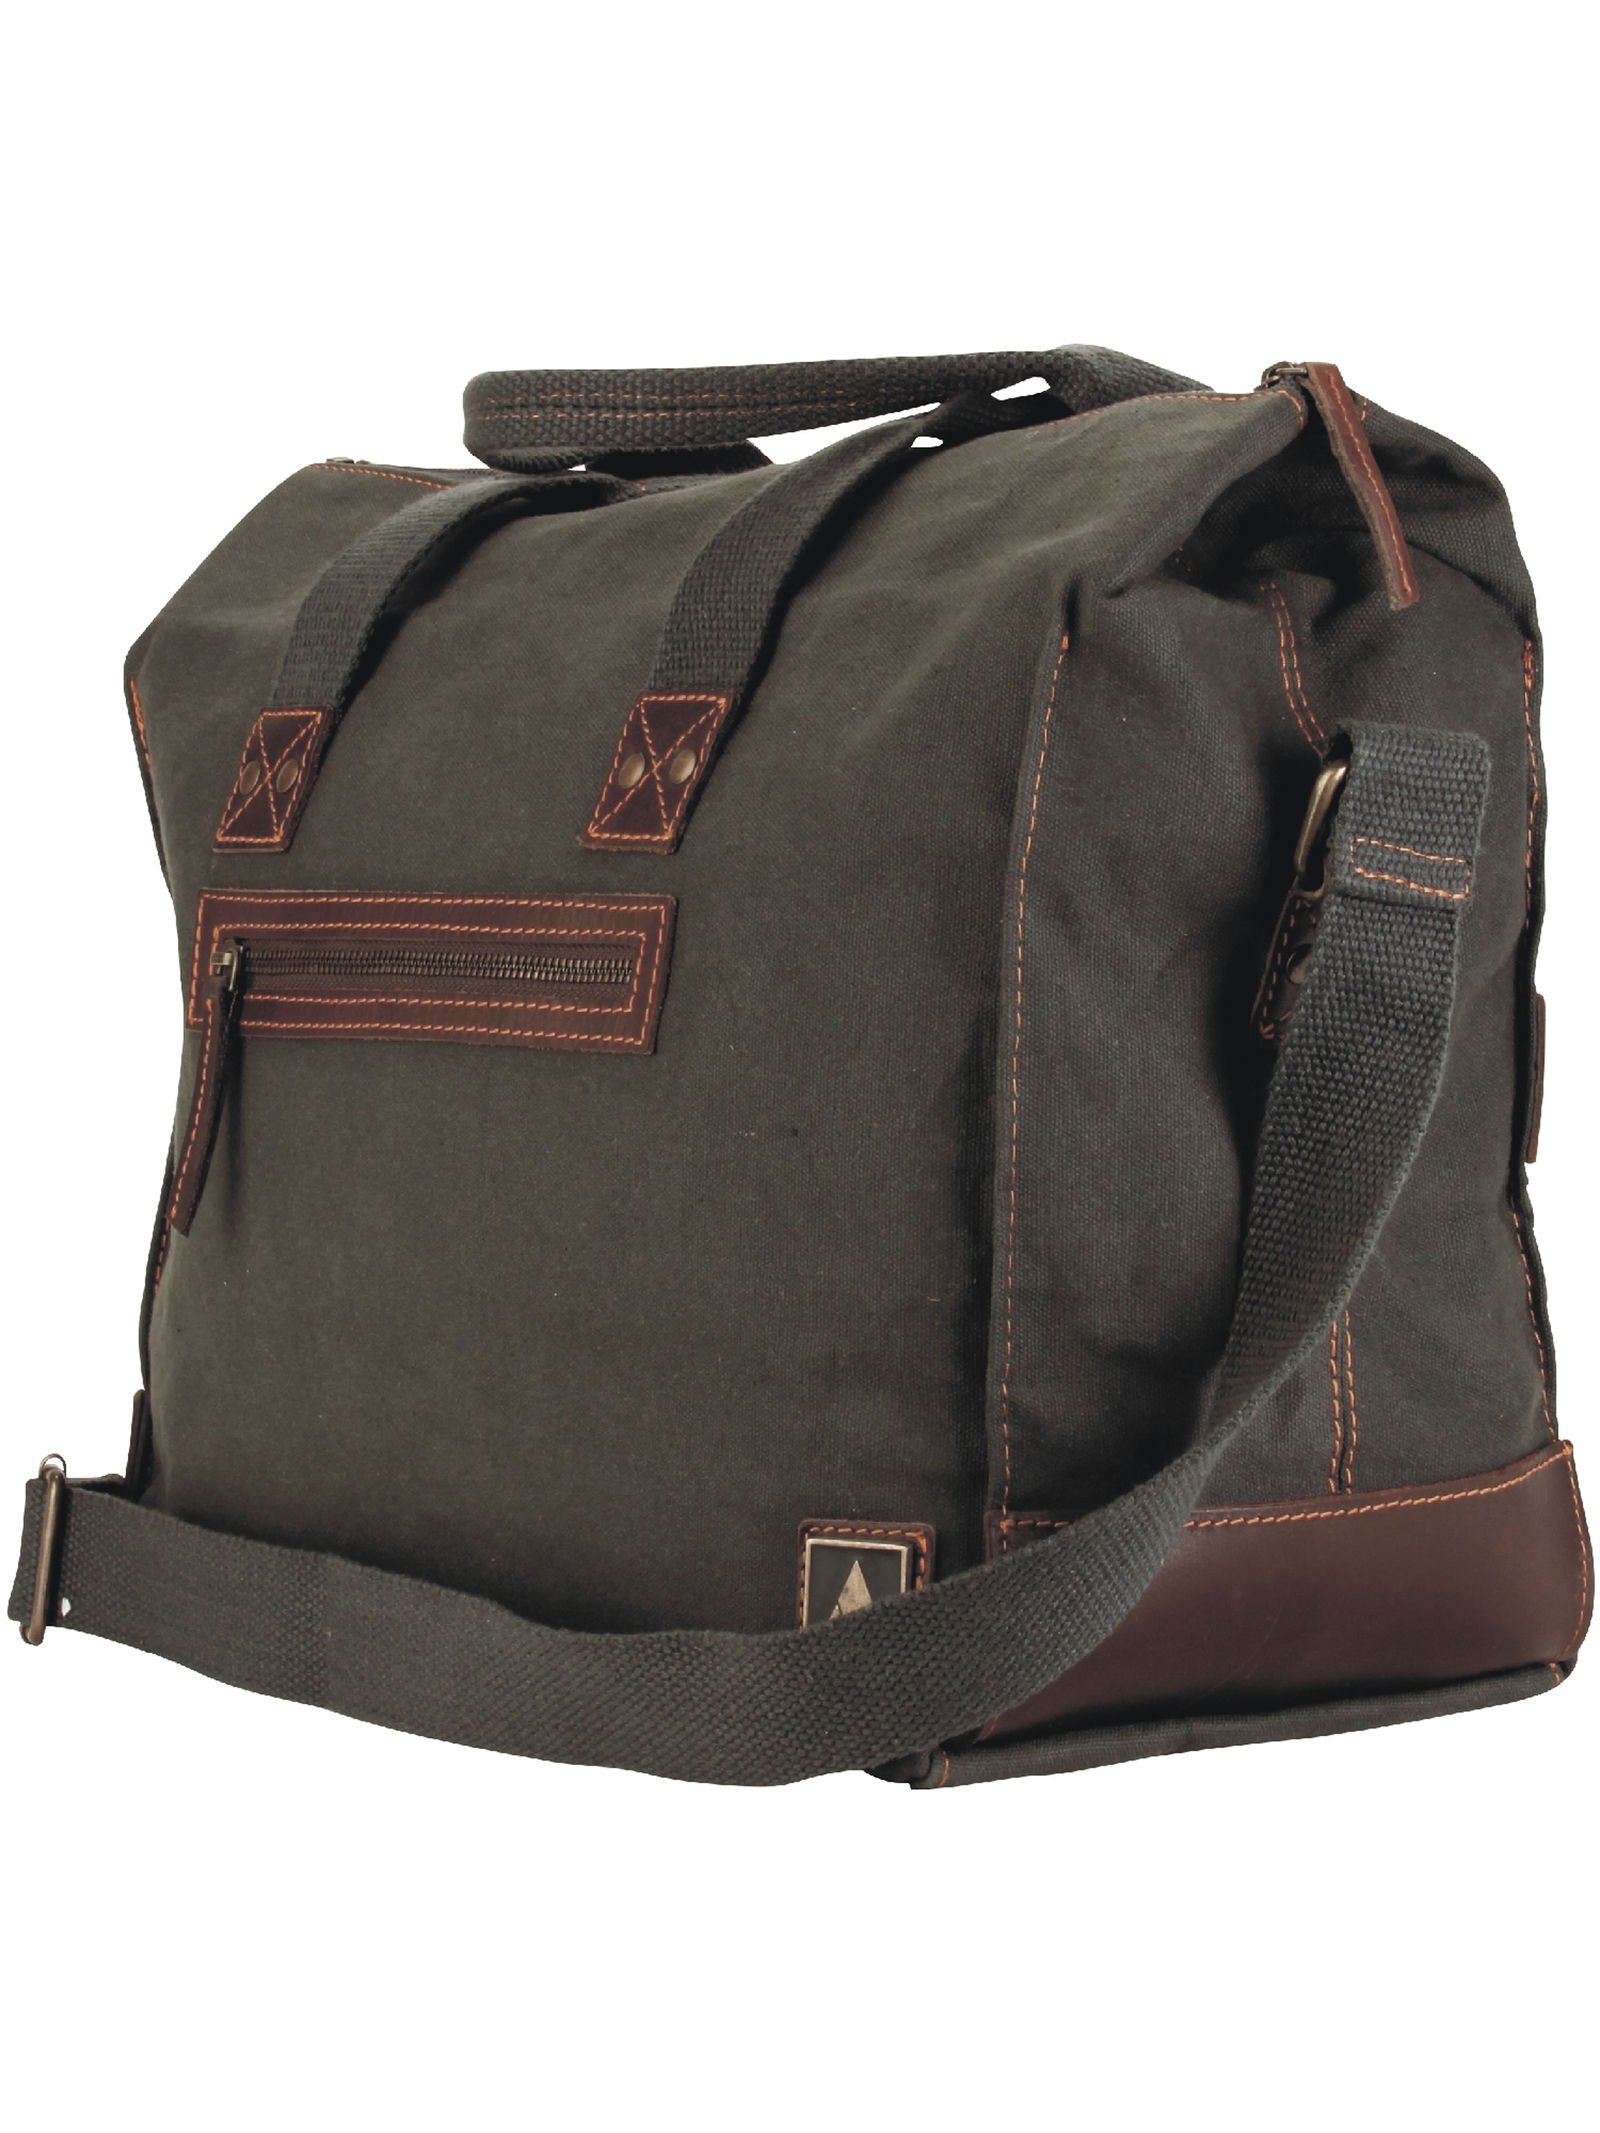 Canvas Satchel Carry-On Bag by Gardener's Supply Company